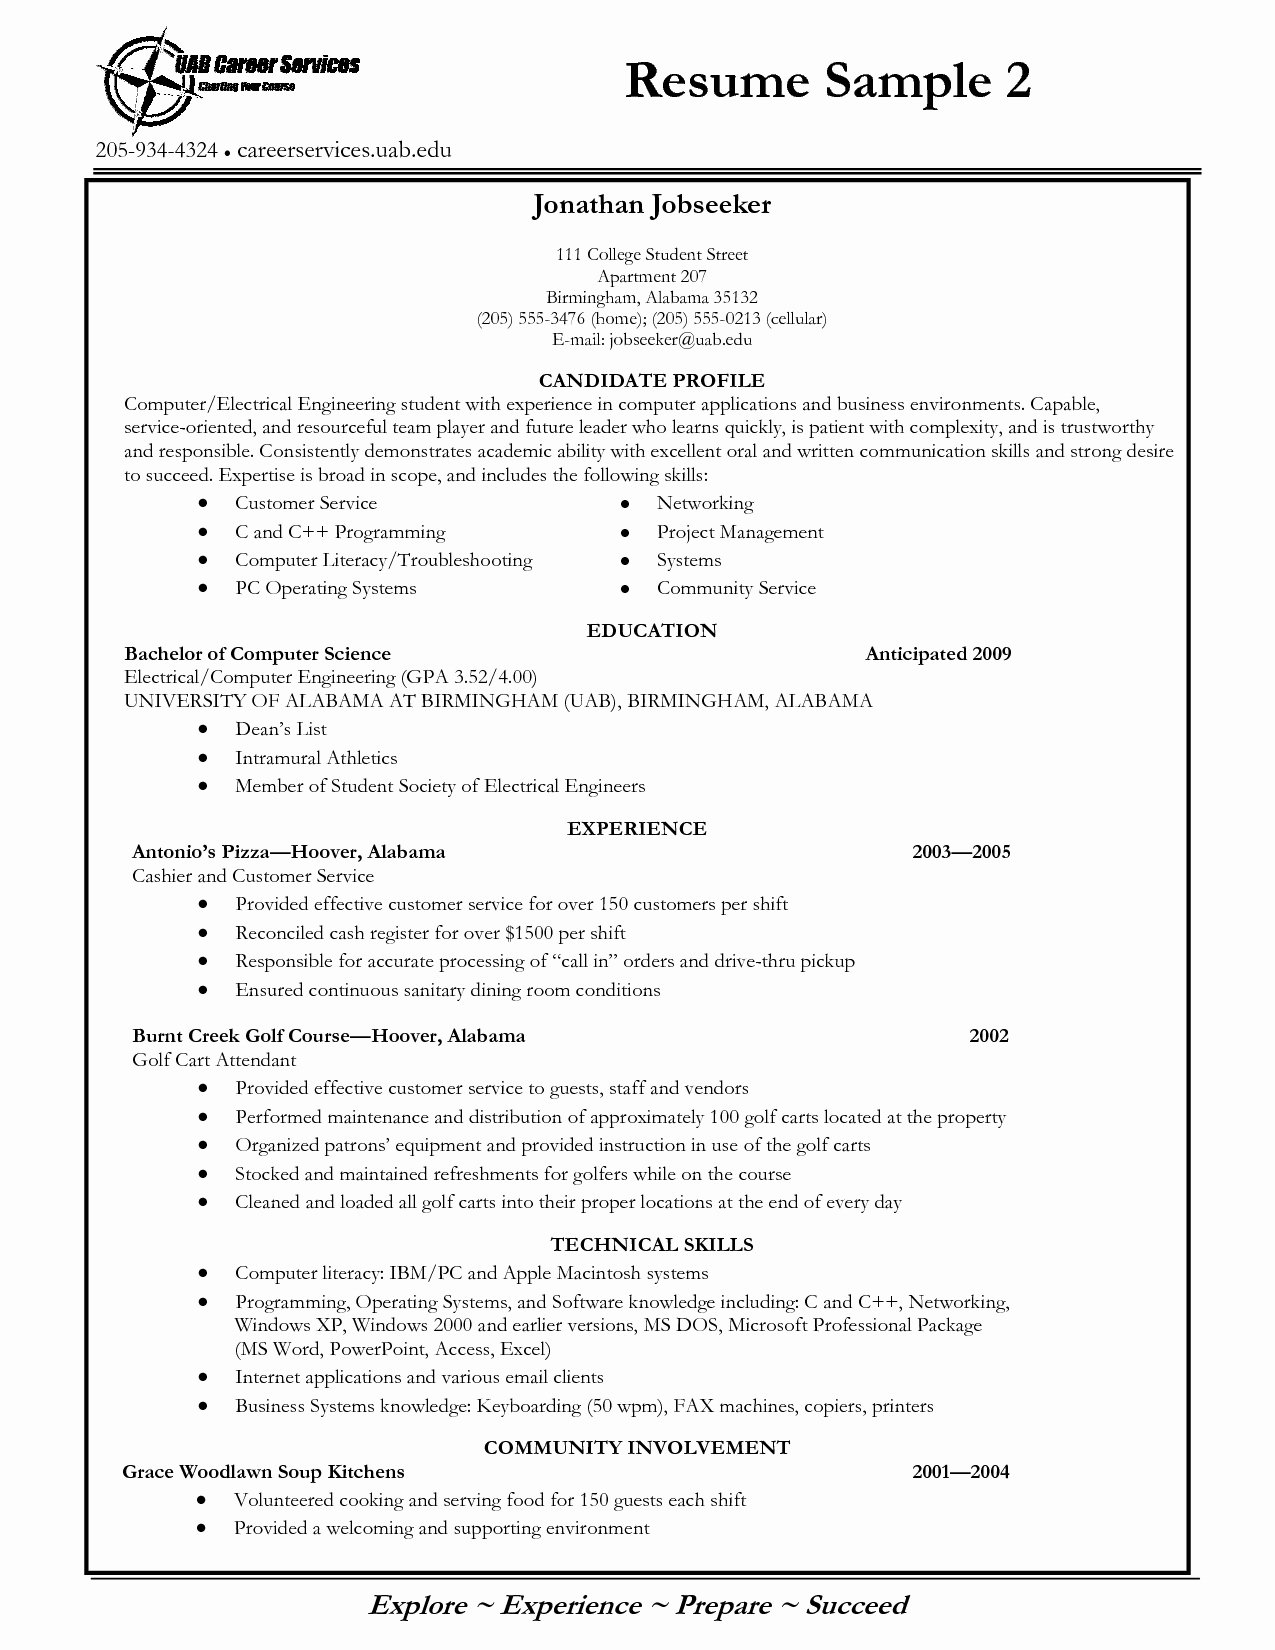 College Freshman Resume Template Unique College Student Resume Template Word Eezee Merce